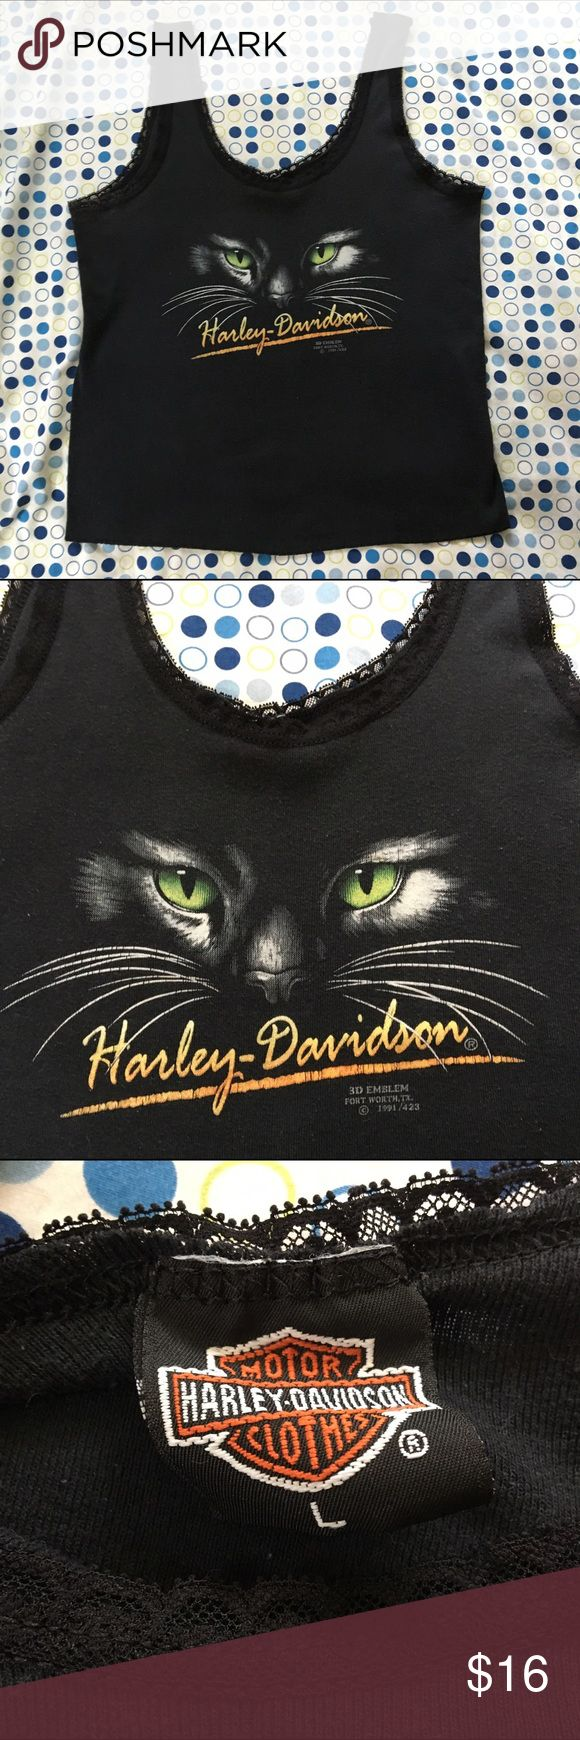 Vintage Harley Davidson Cat Tank Top This vintage Harley Davidson black cat tank top is in very good condition. No holes or stains but does have some slight pilling. Below the cat face in small print is says 3D emblem Fort Worth, Texas 1991. Beautiful lace border. Runs a little small. Harley-Davidson Tops Tank Tops